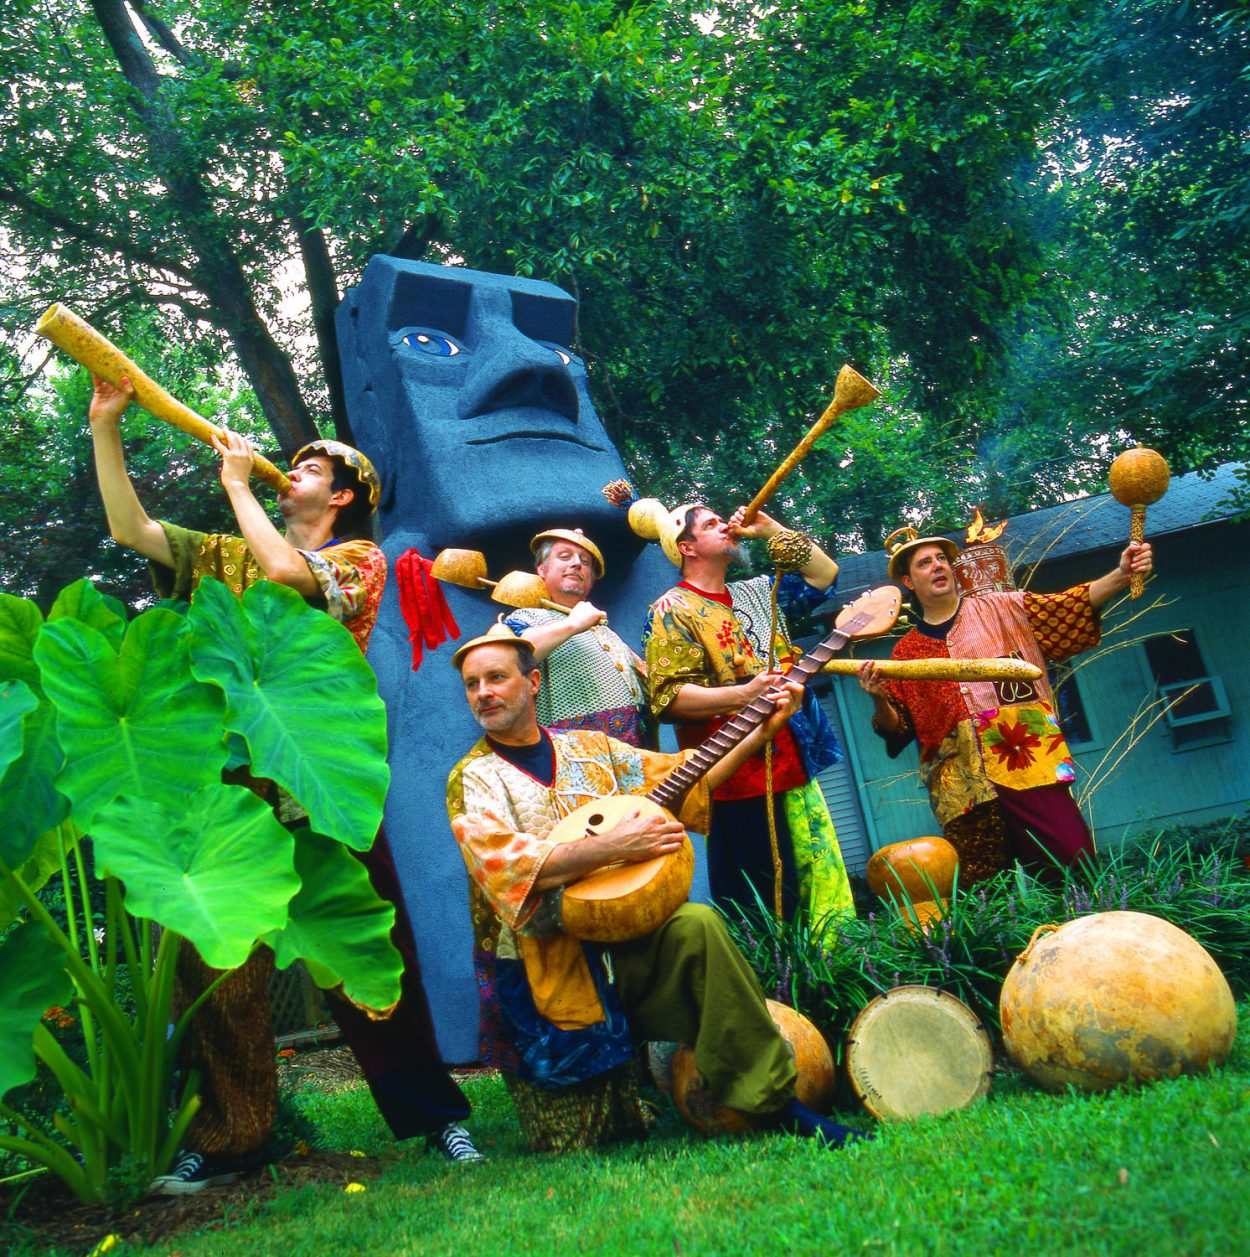 Richmond Indigenous Gourd Orchestra provides music as a back drop for lots of family fun. Here they are with their gourd instruments.